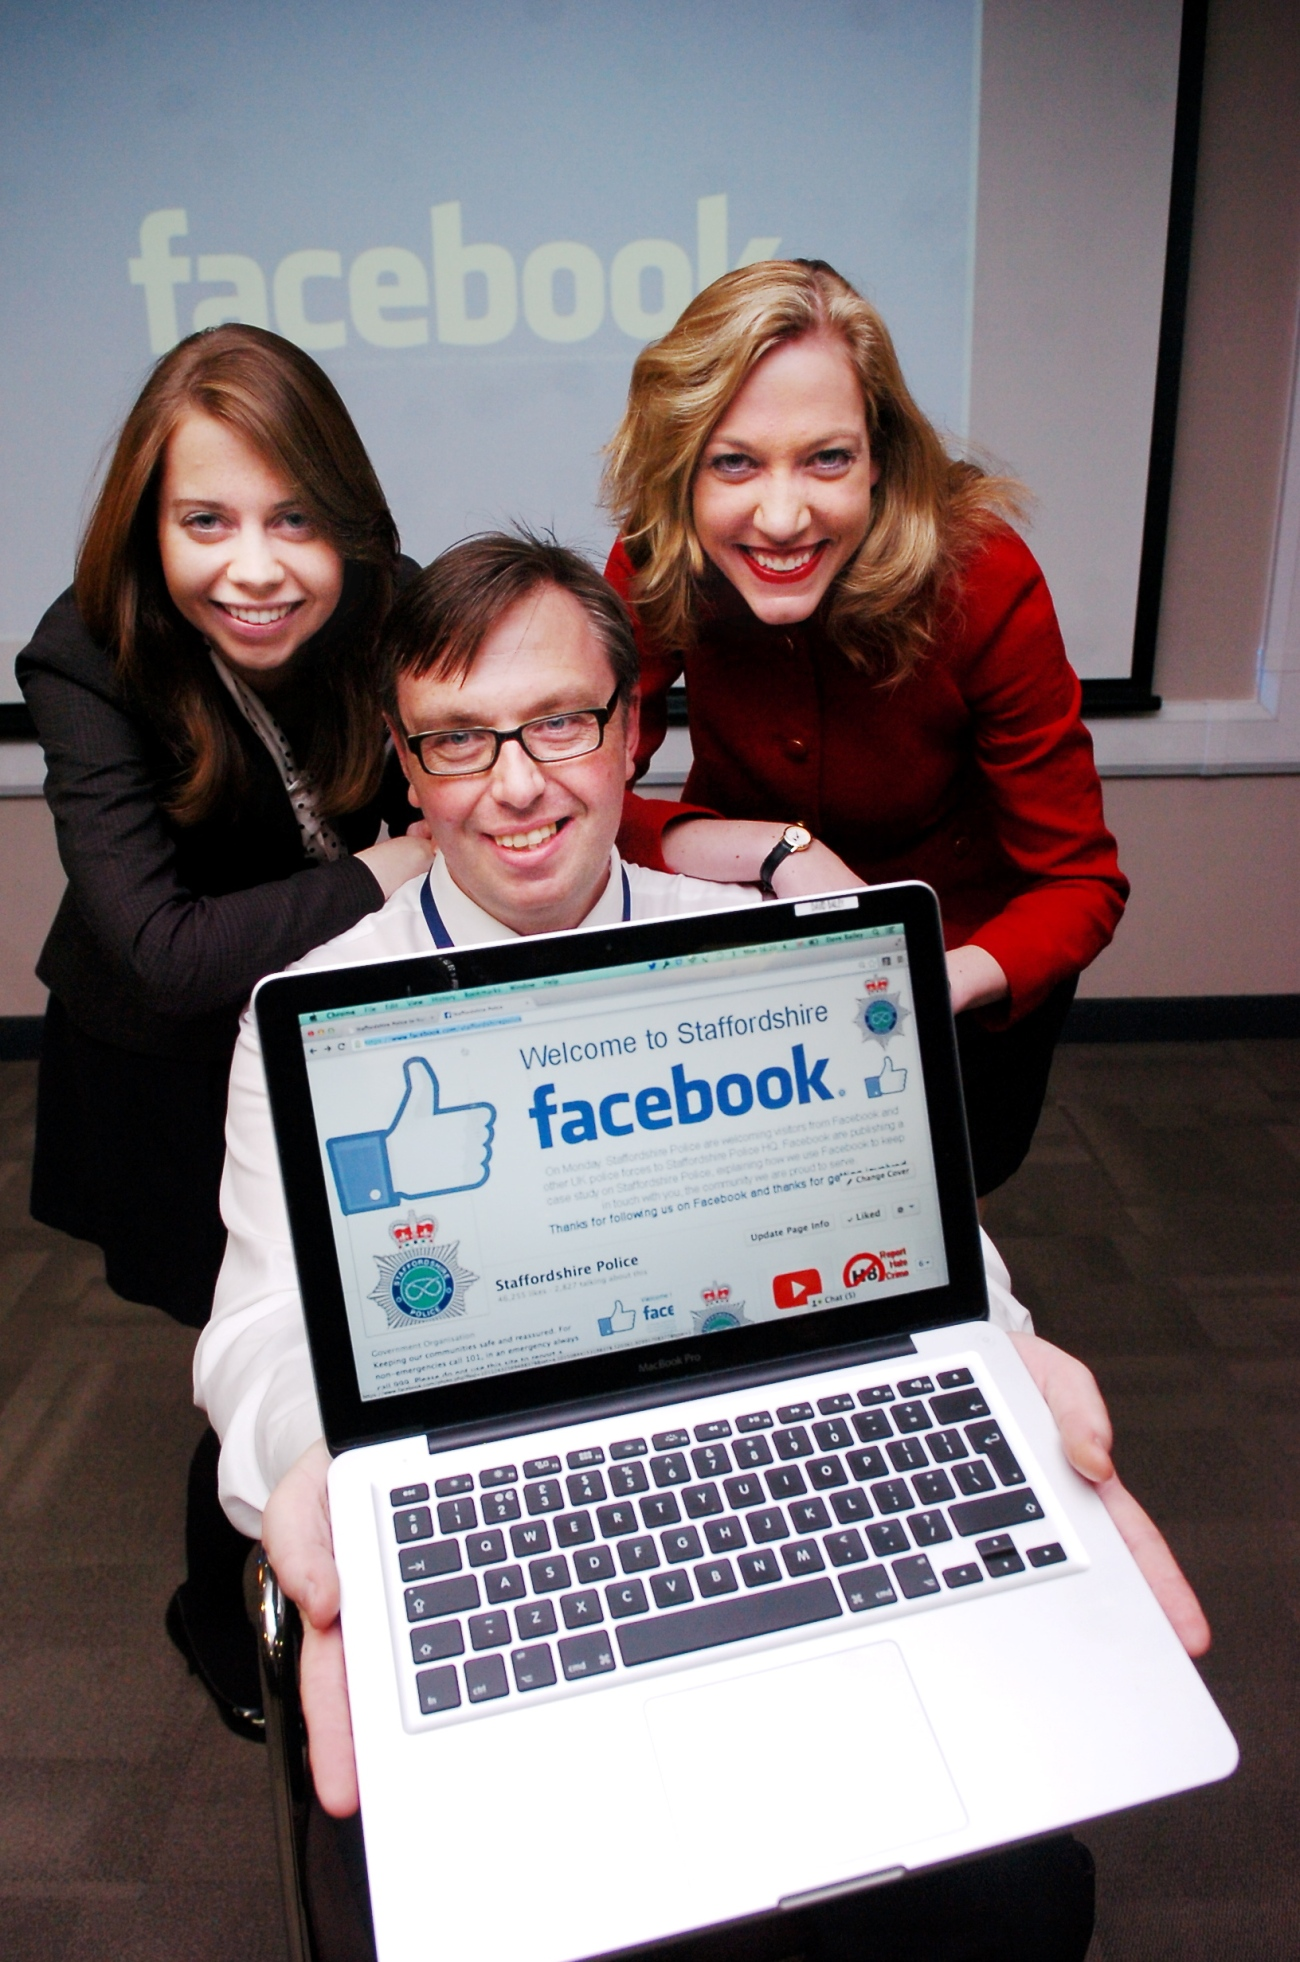 How Staffordshire Police uses its Facebook page is going to be used by the social-media company as an example to companies worldwide. Two representatives from Facebook will be attending a police training day for 35 other police forces at HQ. PICTURED: From left: Alison Cies, Politics and Government Associate for Facebook, David Bailey, Staffordshire Police Communication Manager and Elizabeth Linder, Politics and Government Specialist for Facebook